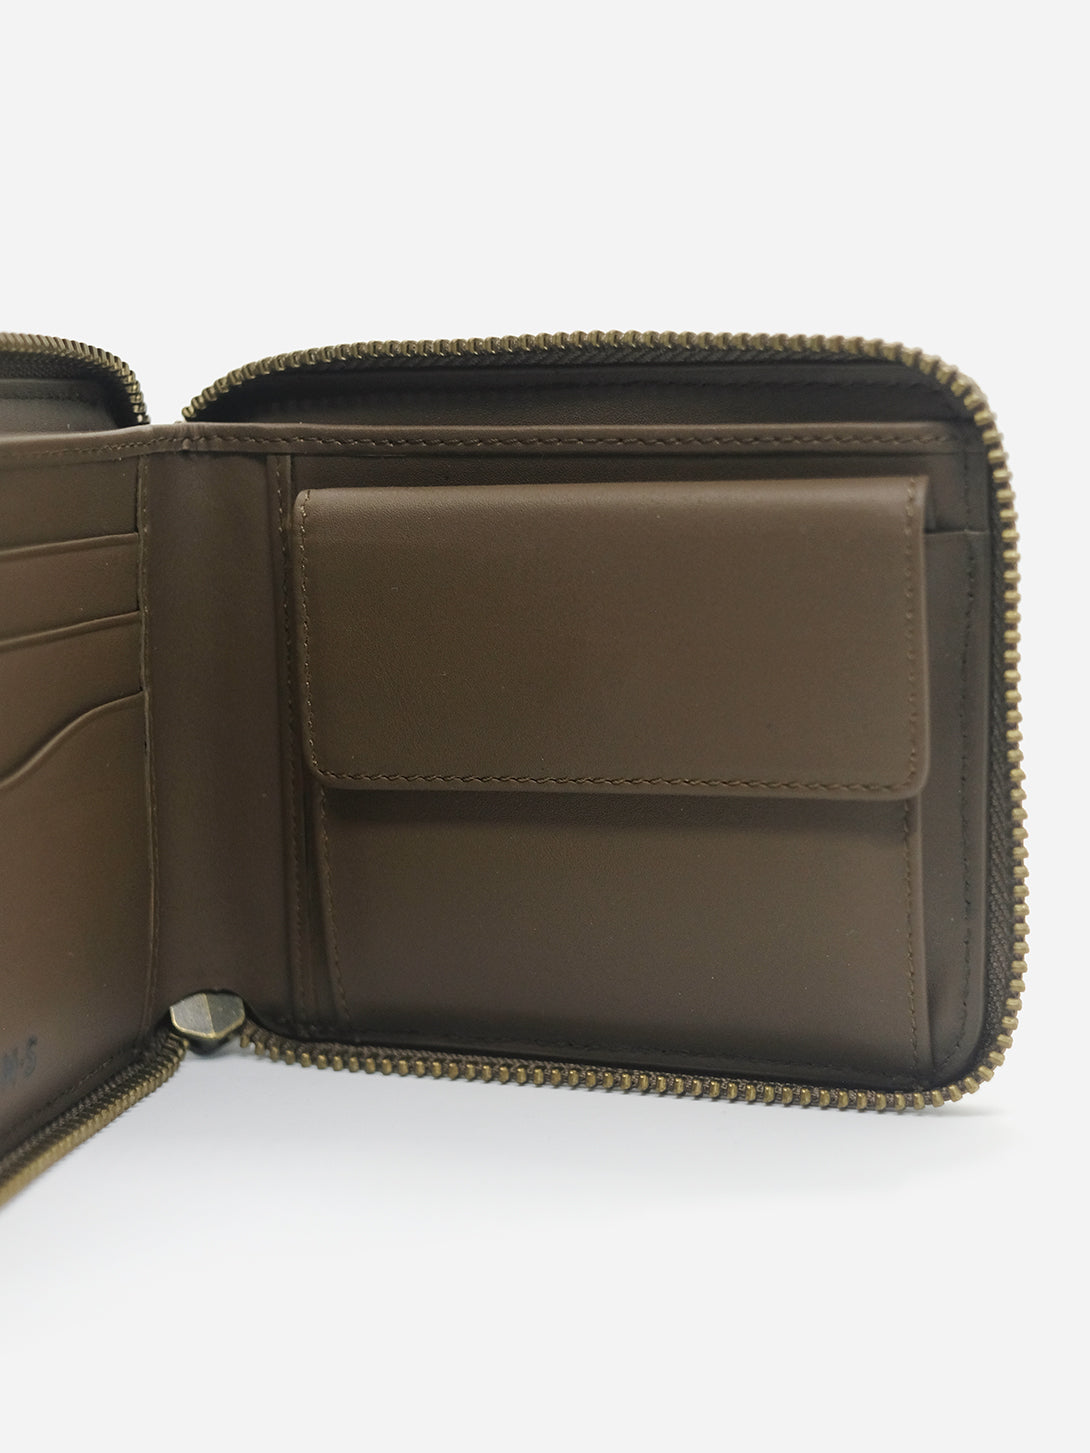 KHAKI ZIPPER WALLET